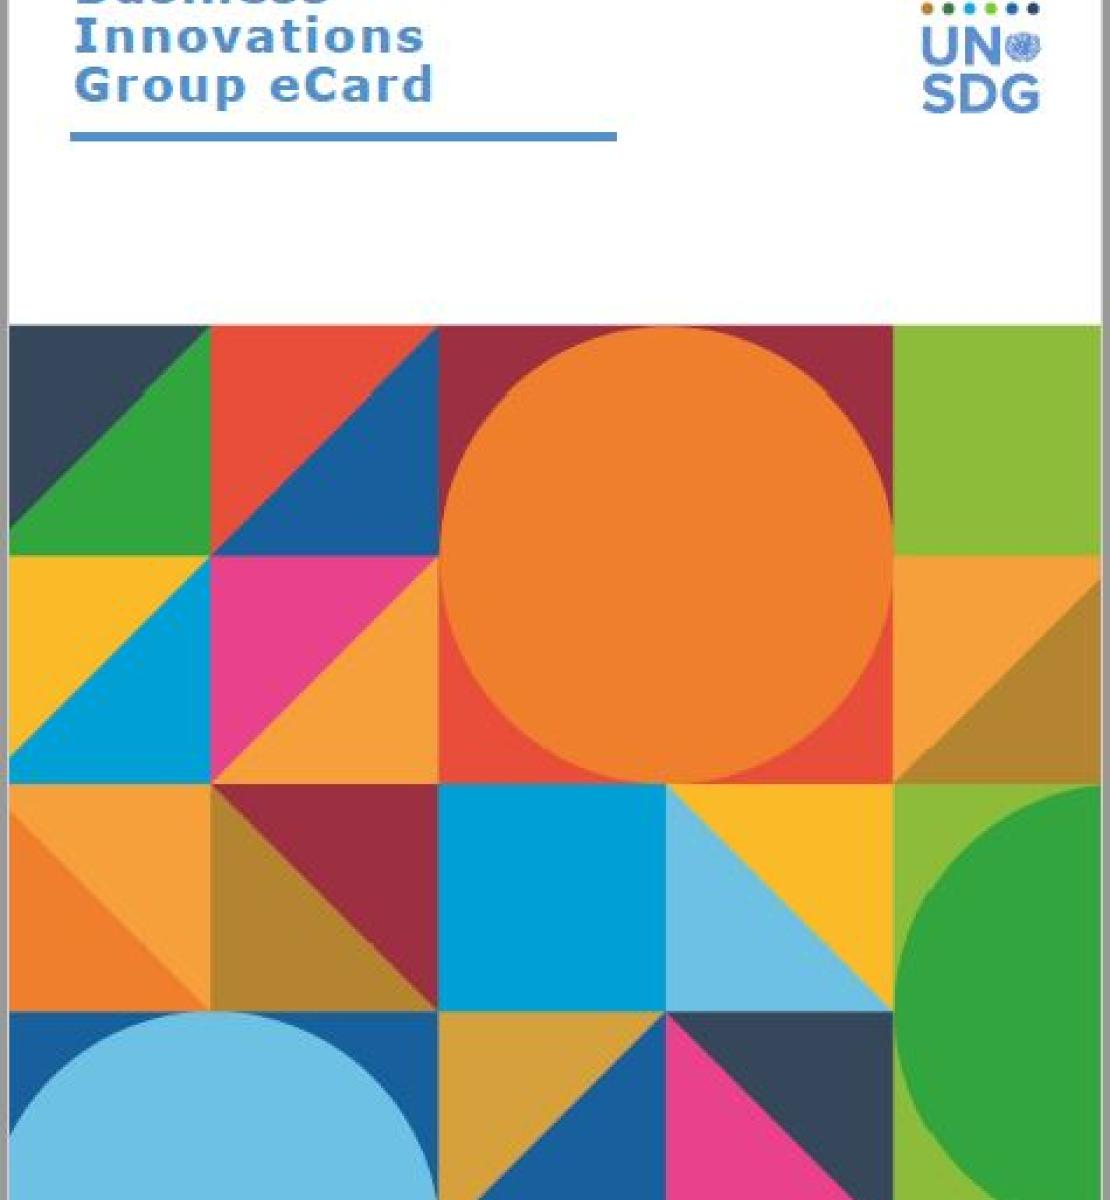 Cover shows title against white background above colourful geometric shapes.